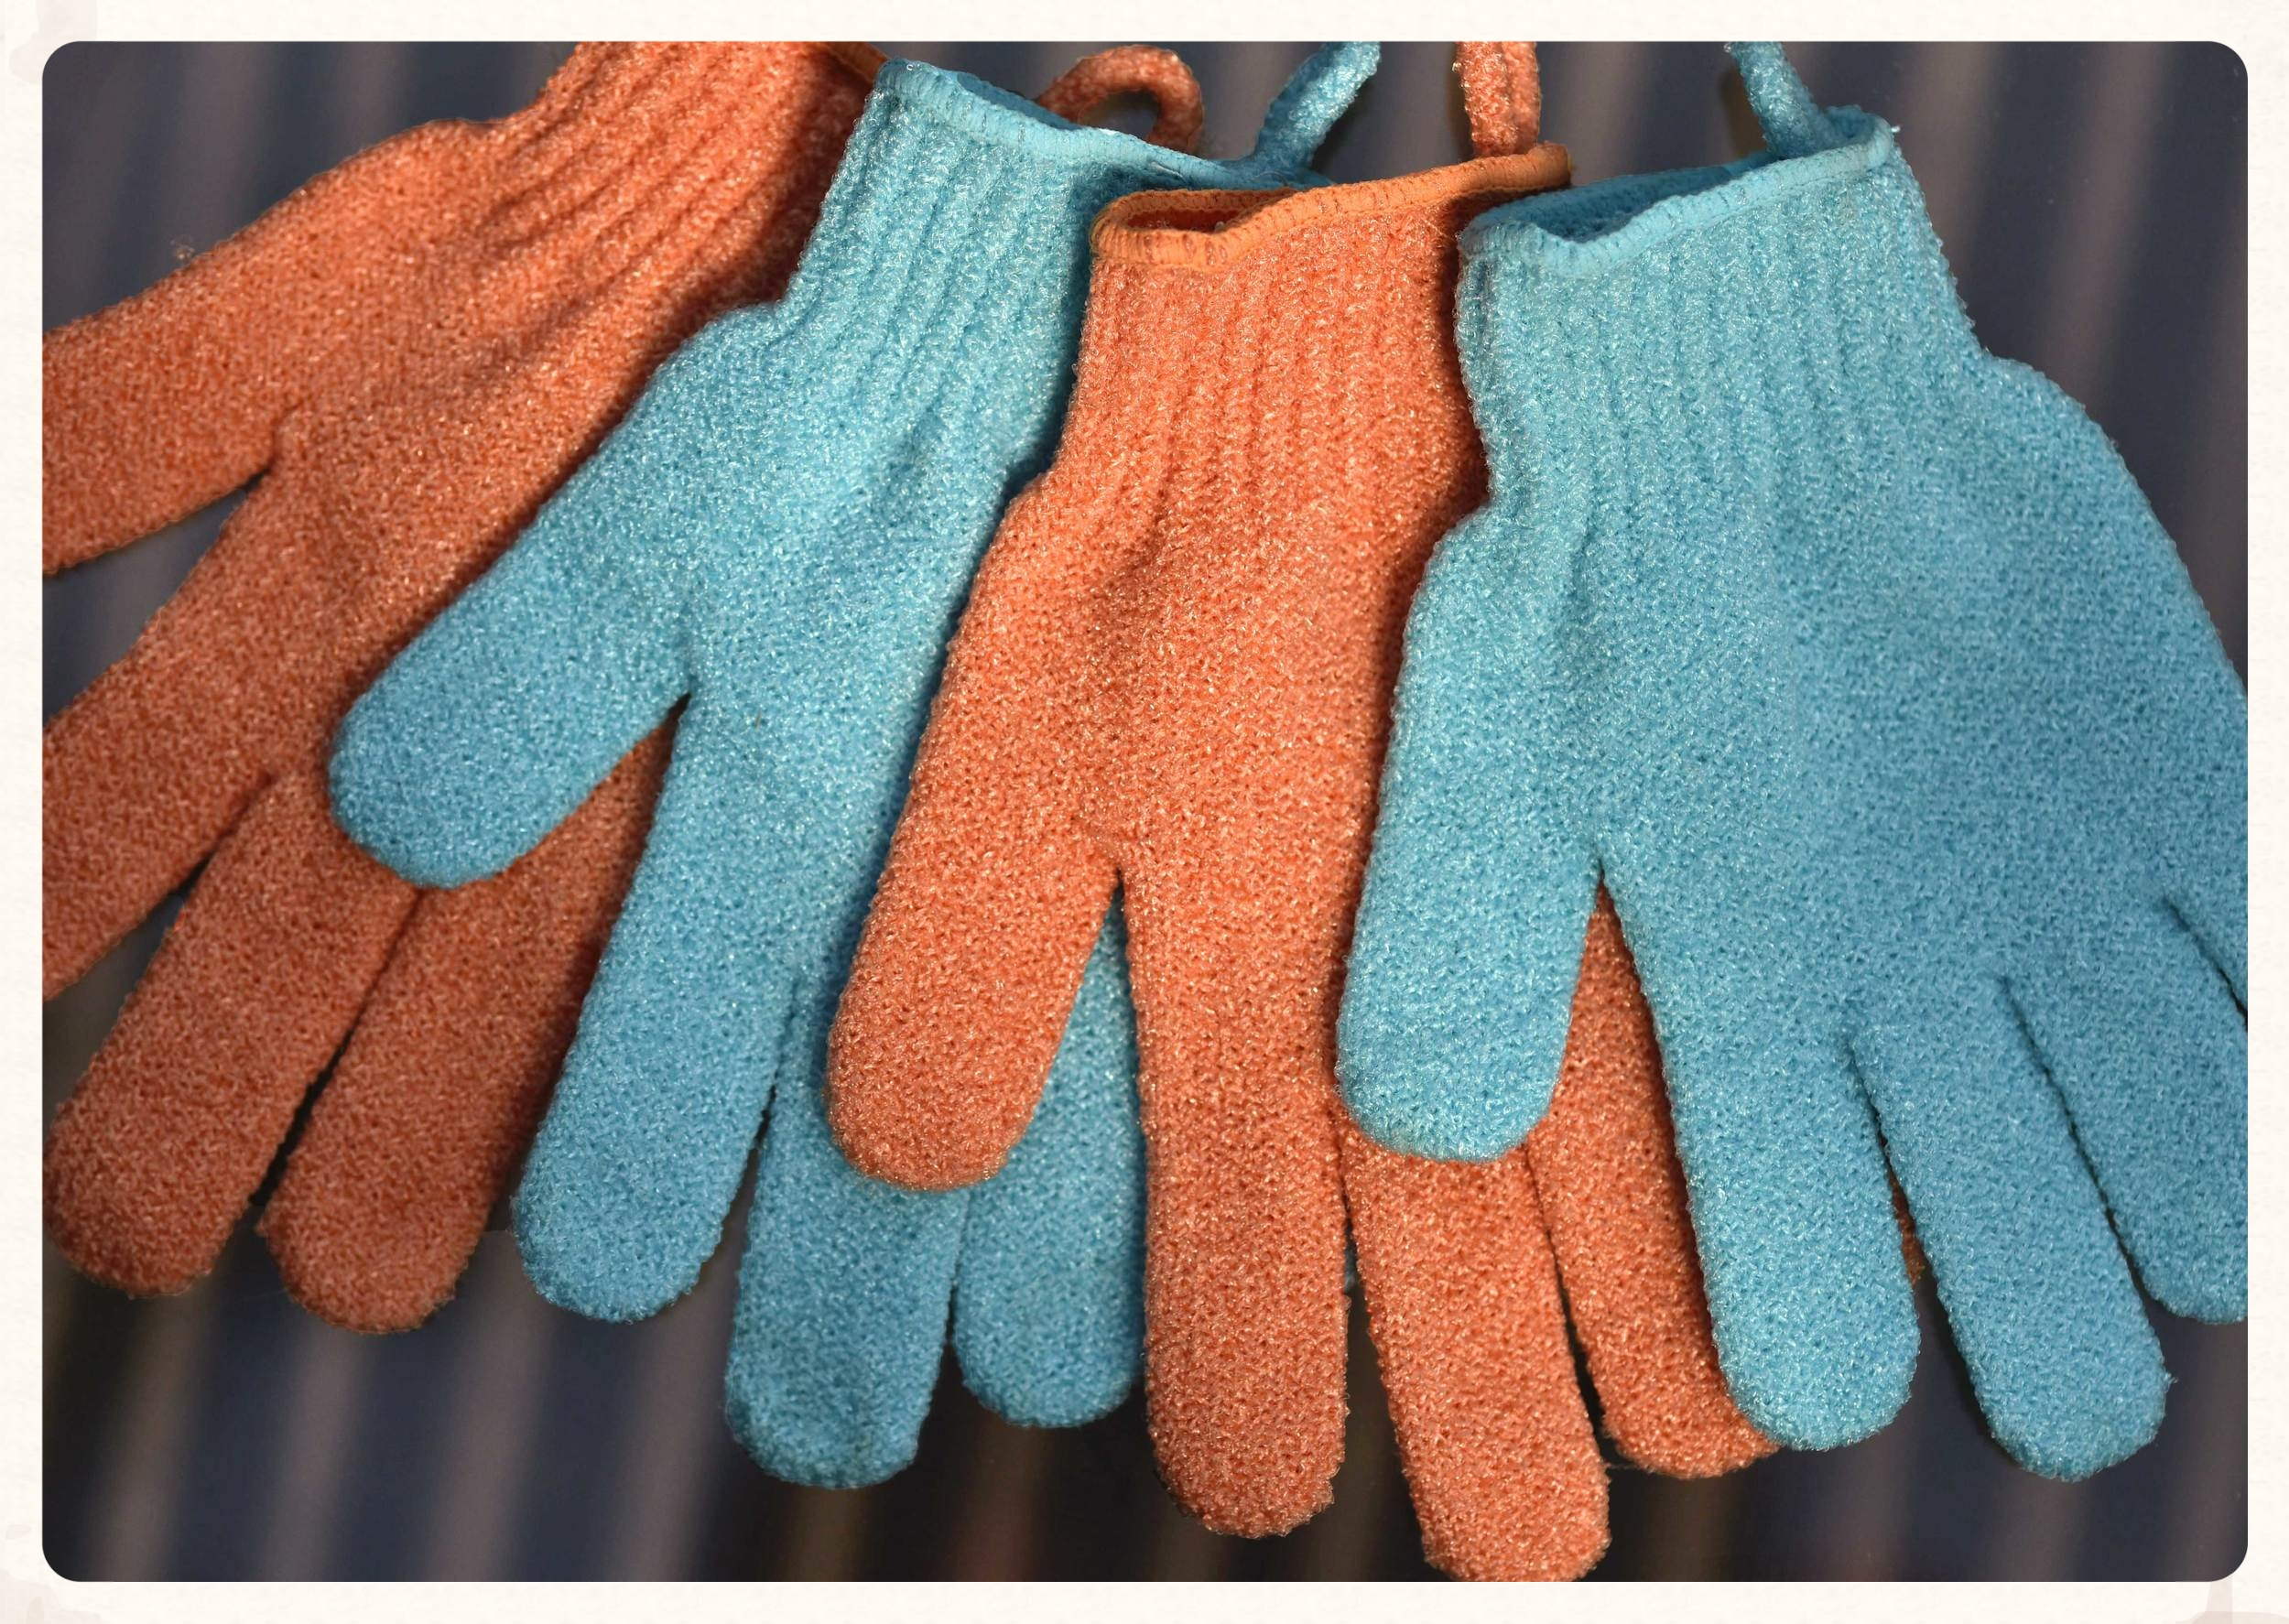 Scrub gloves from Bodyshop, get a different color for the feet! Image©gunjanvirk